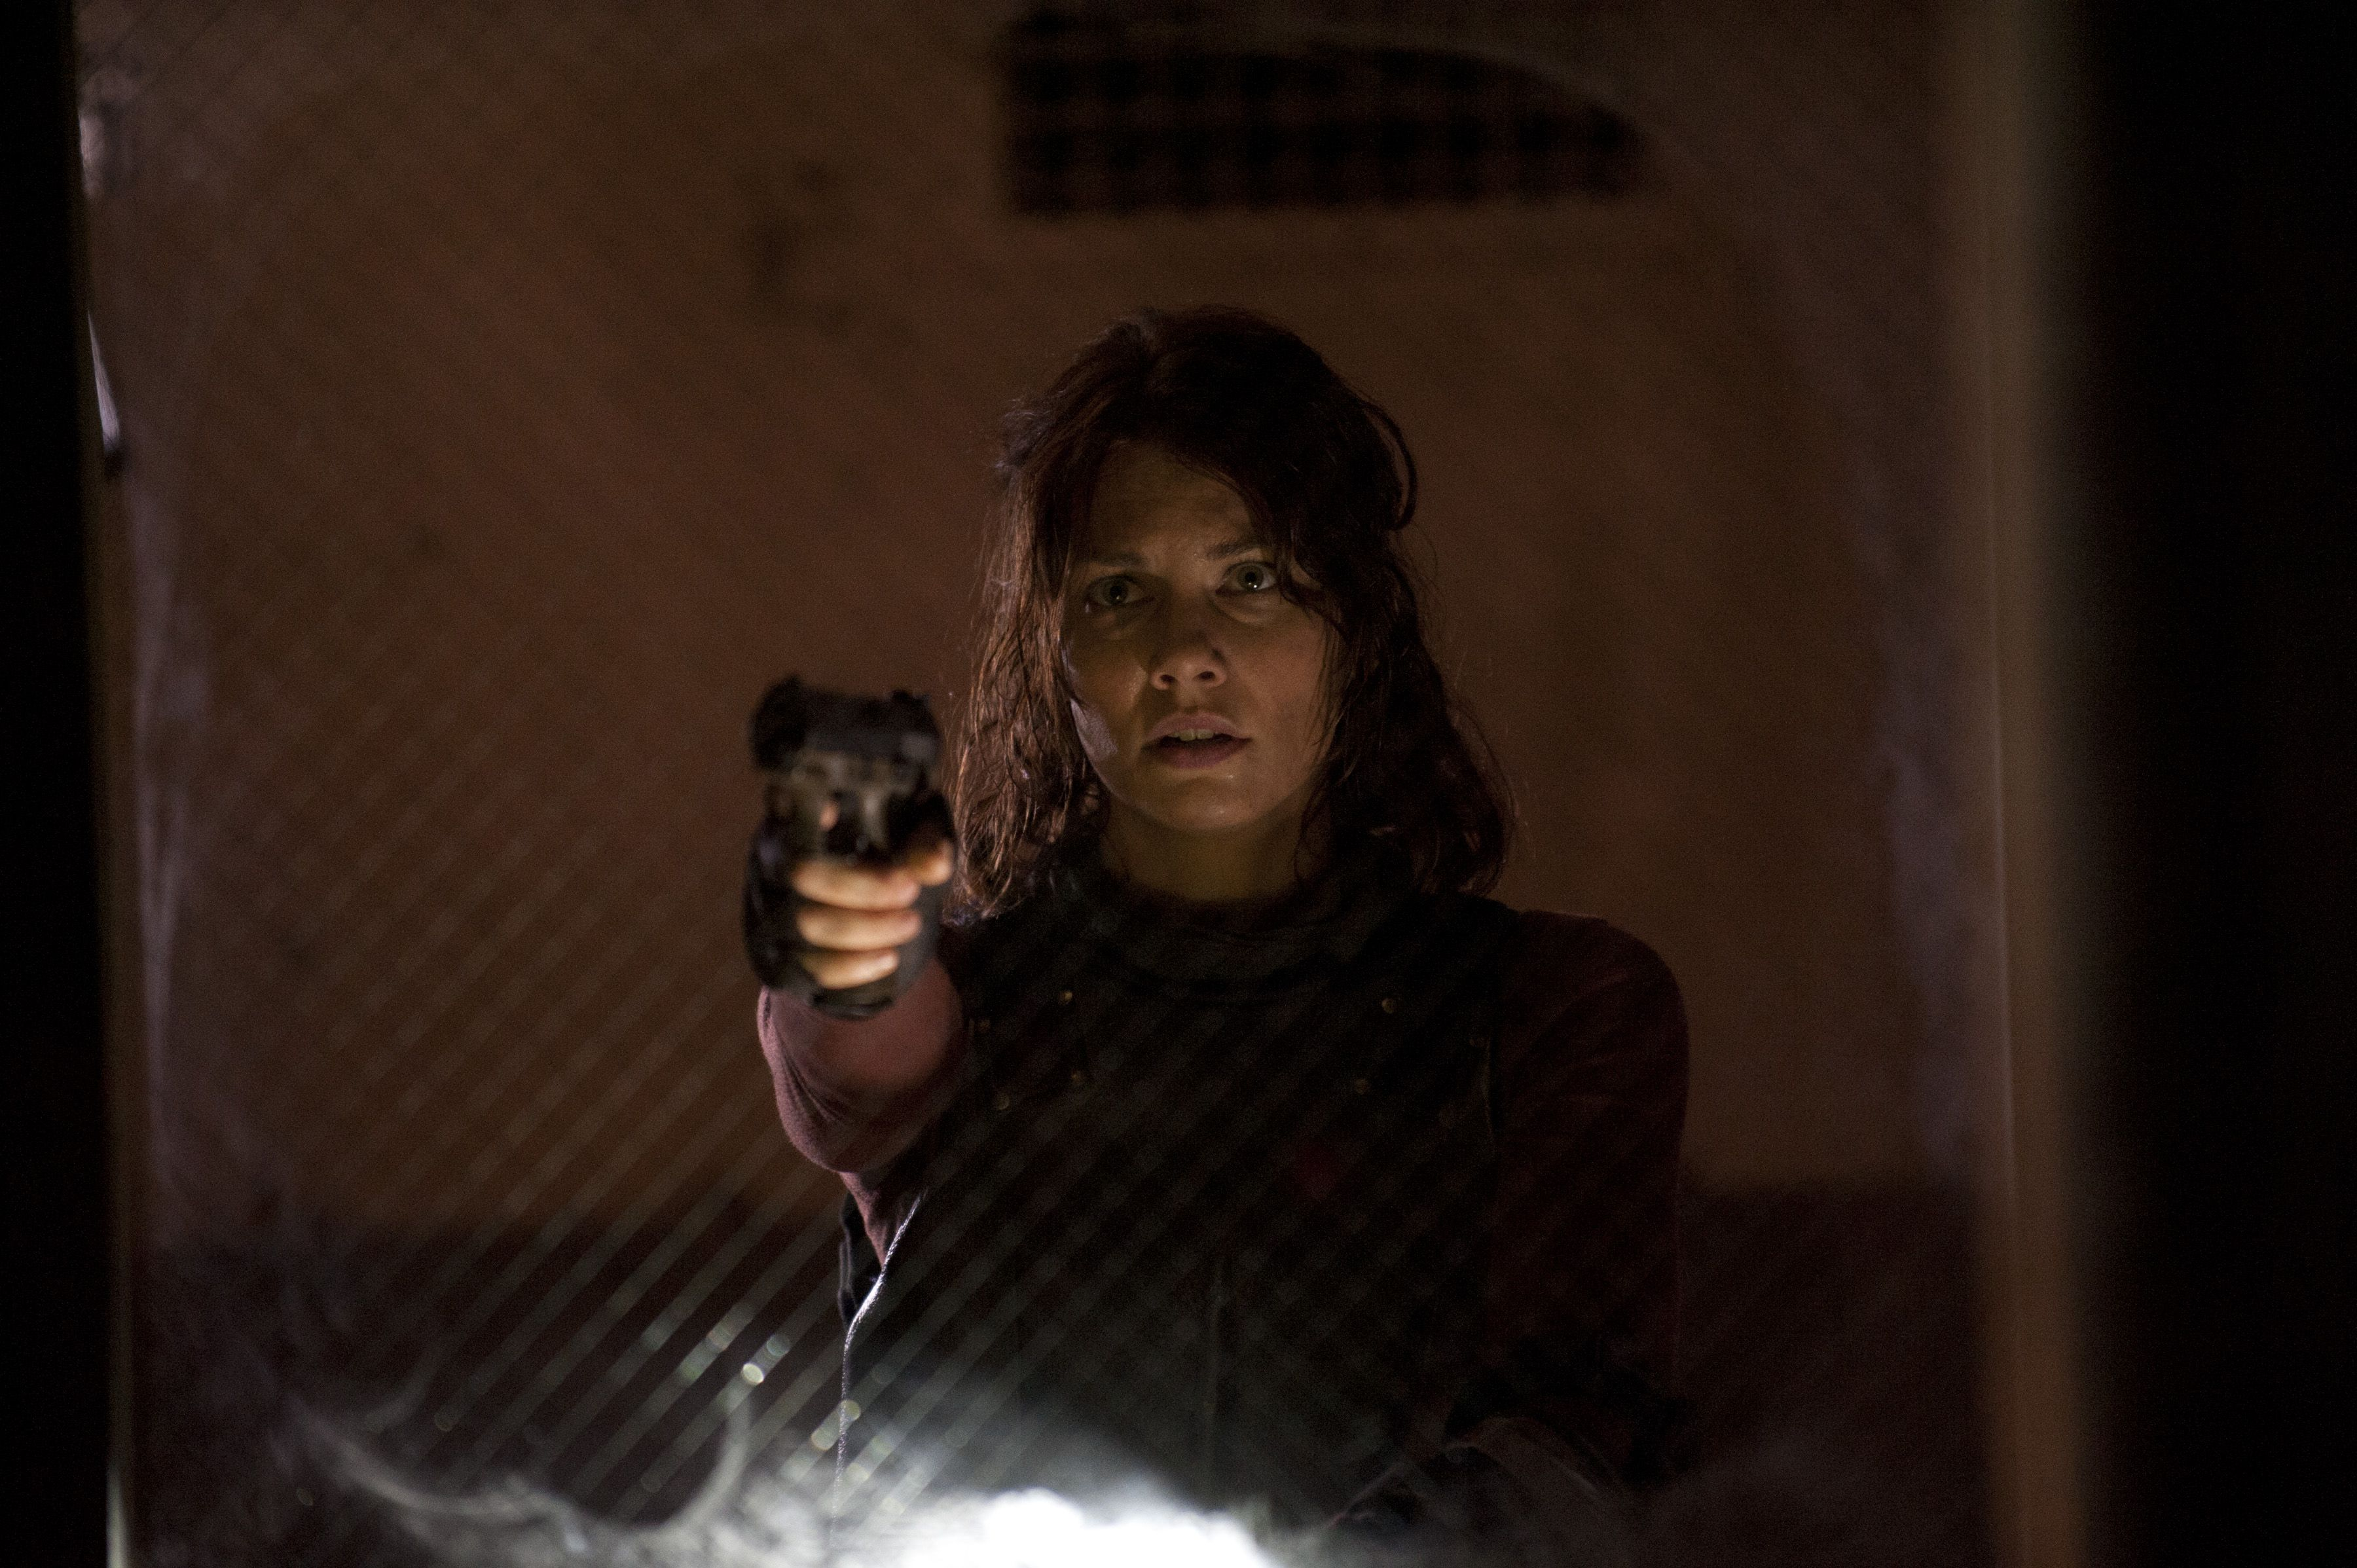 The walking dead images maggie greene wallpaper and background the walking dead season 4 episode 5 internment airs on sunday november 10 2013 on amc episode synopsis the walking dead season 4 episode 5 intern voltagebd Choice Image